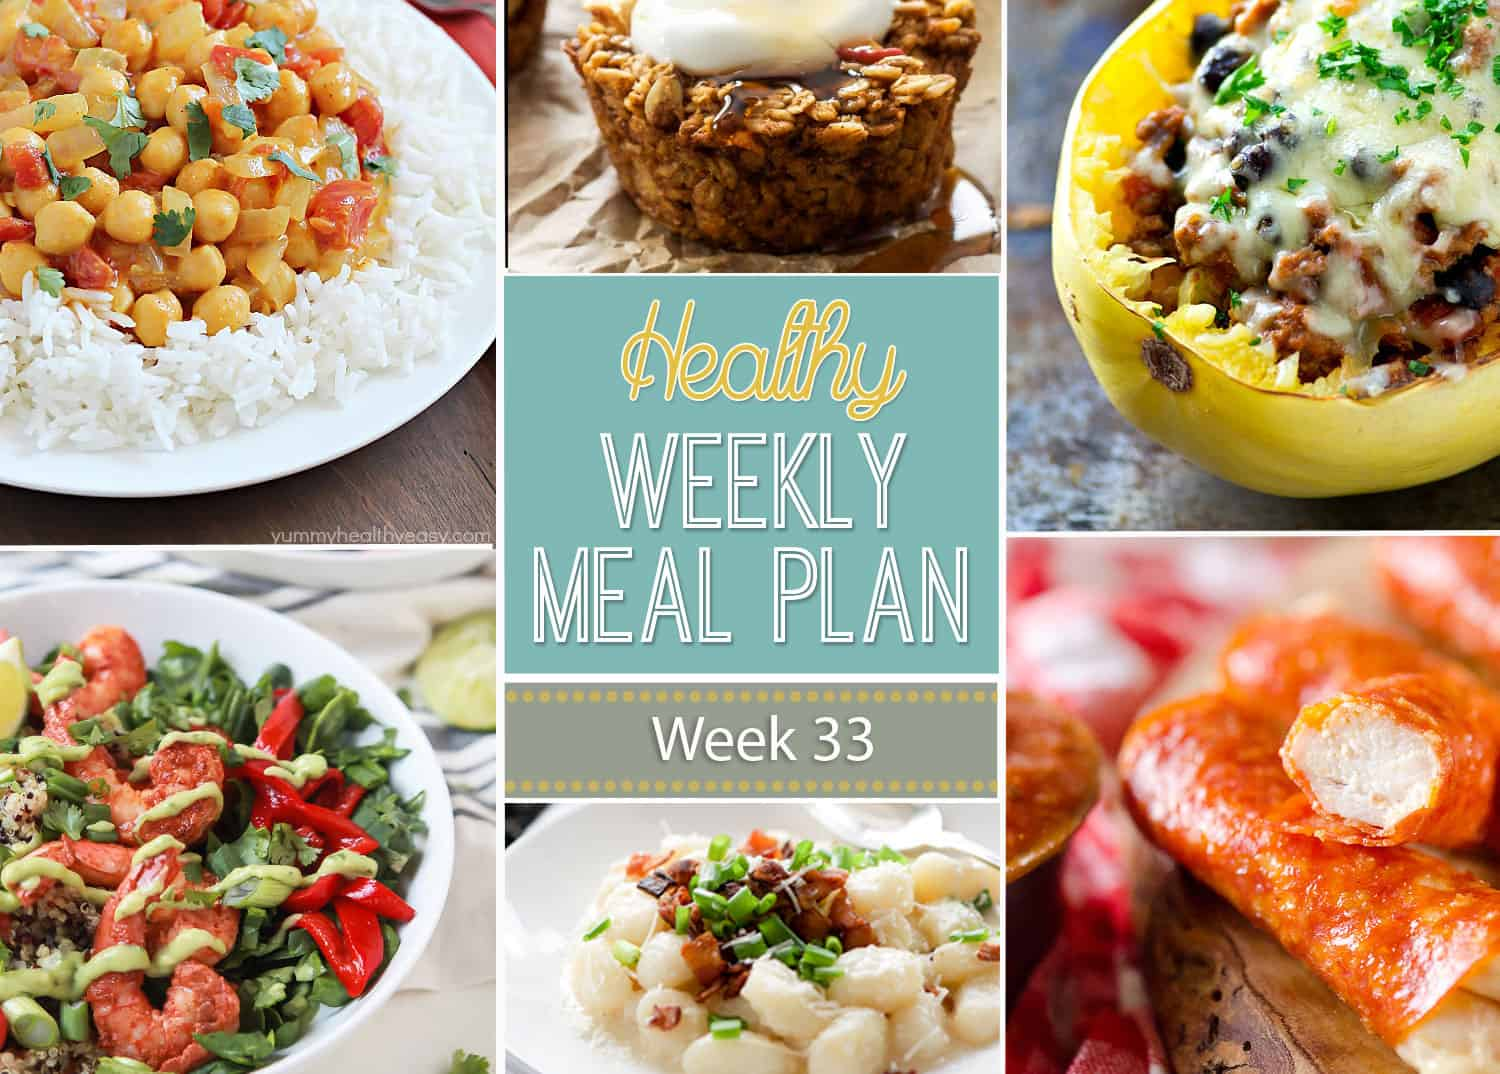 Healthy Weekly Meal Plan Week 33